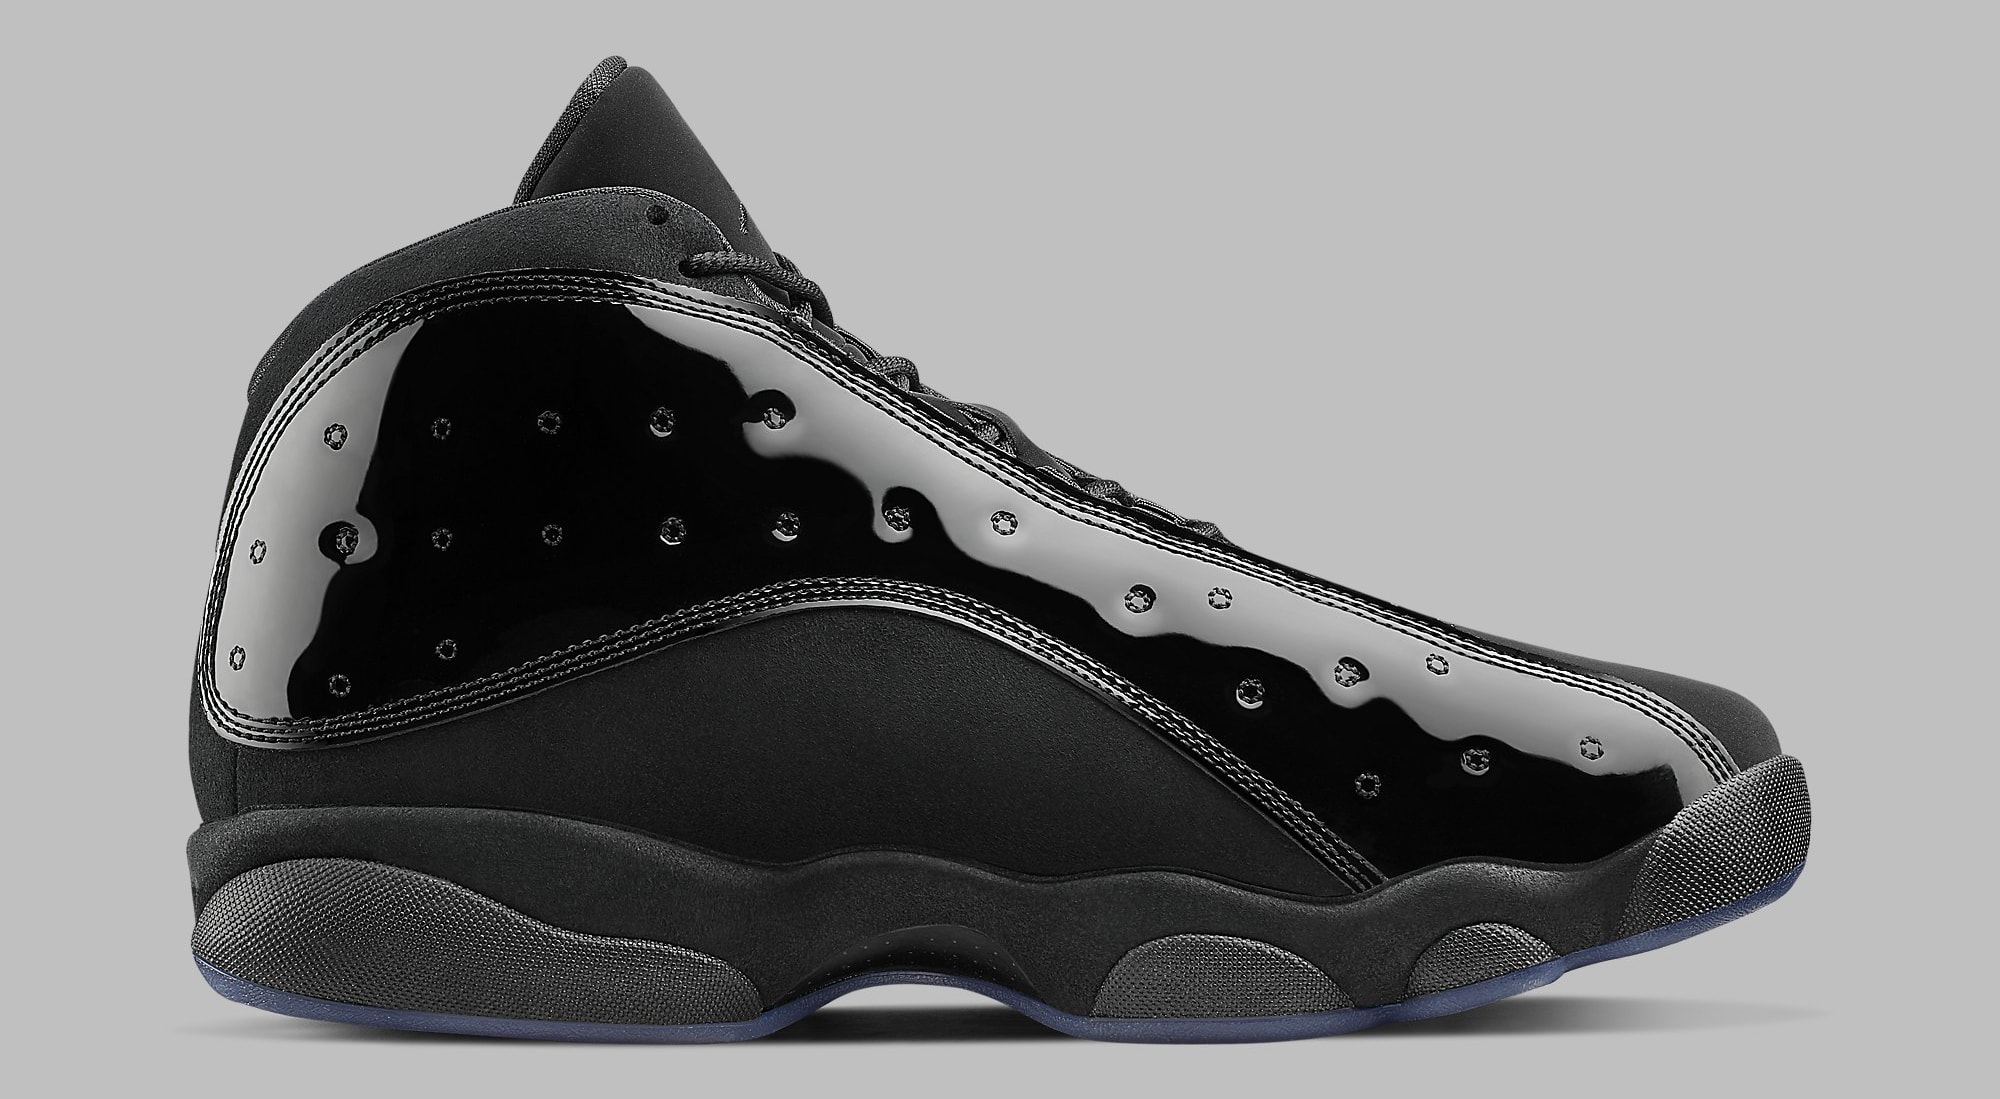 los angeles 69ee0 de27e Image via Nike Air Jordan 13 Retro  Cap and Gown  414571-012 Medial